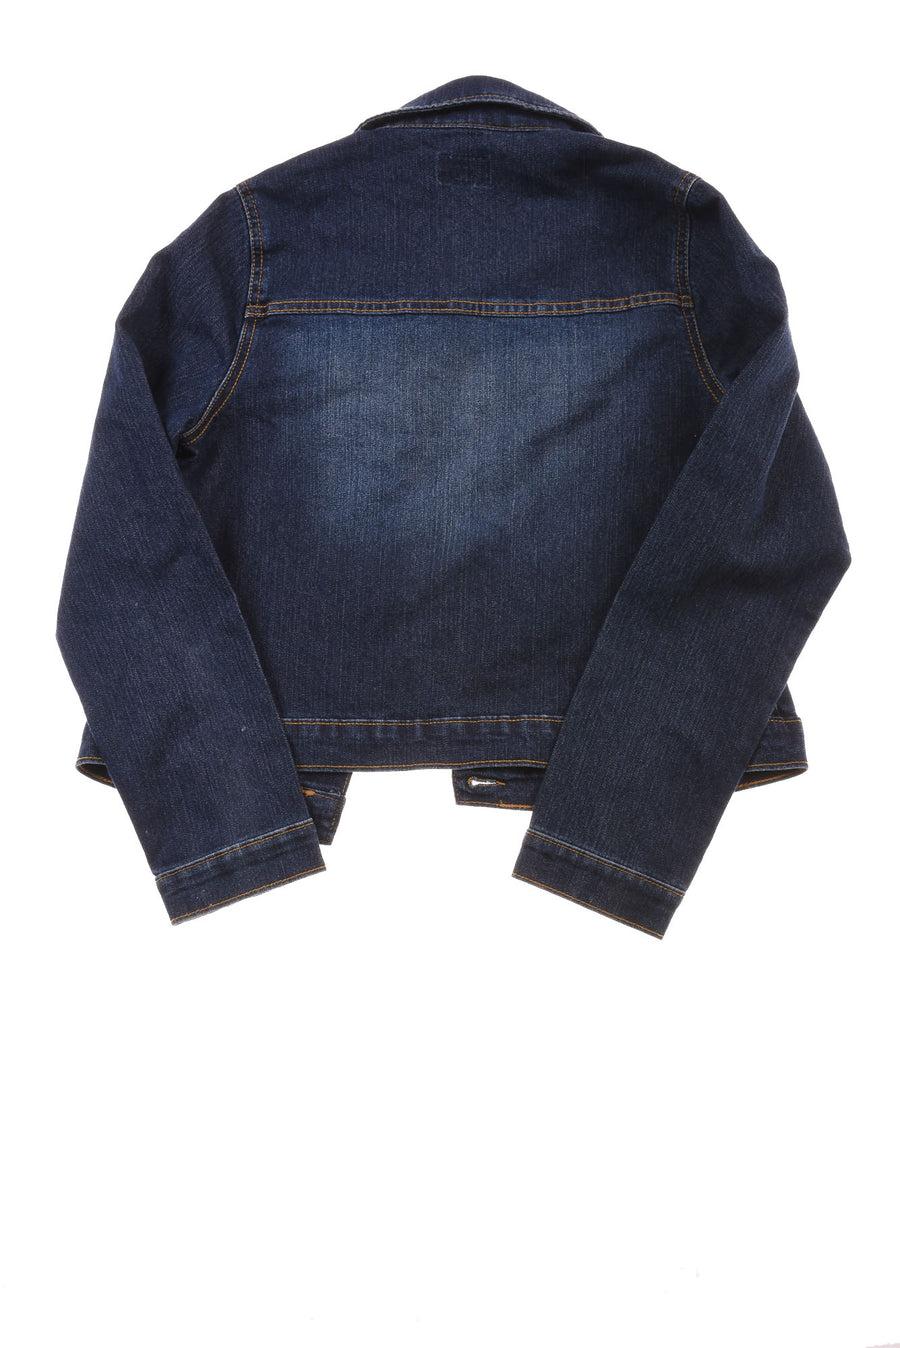 USED The Children's Place Girl's Denim Jacket  16 Blue